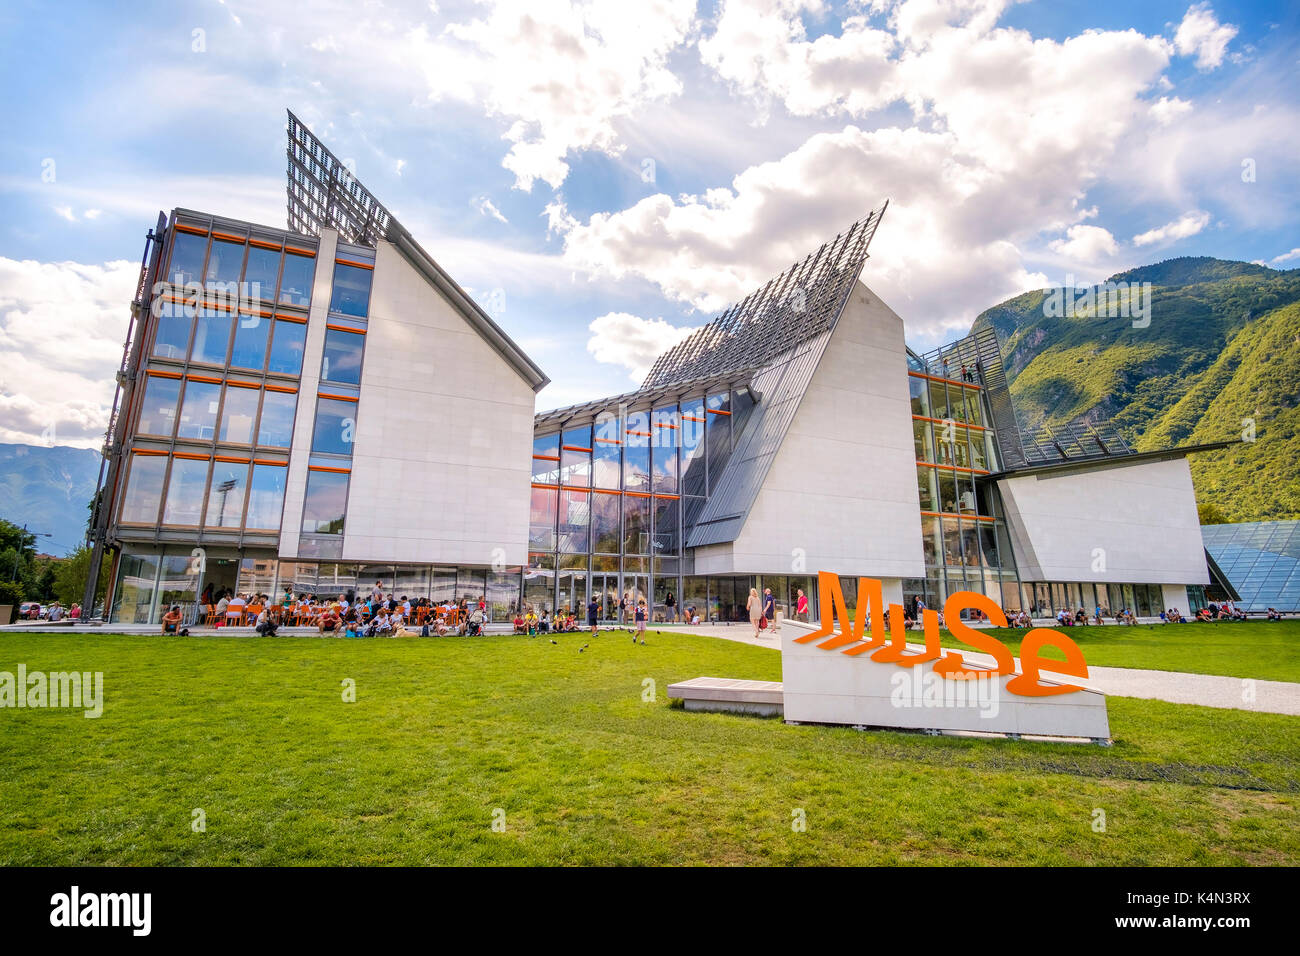 Trento, 14 Aug 2017 - The MuSe museum in Trento - Museum of Natural History designed by Renzo Piano - Stock Image